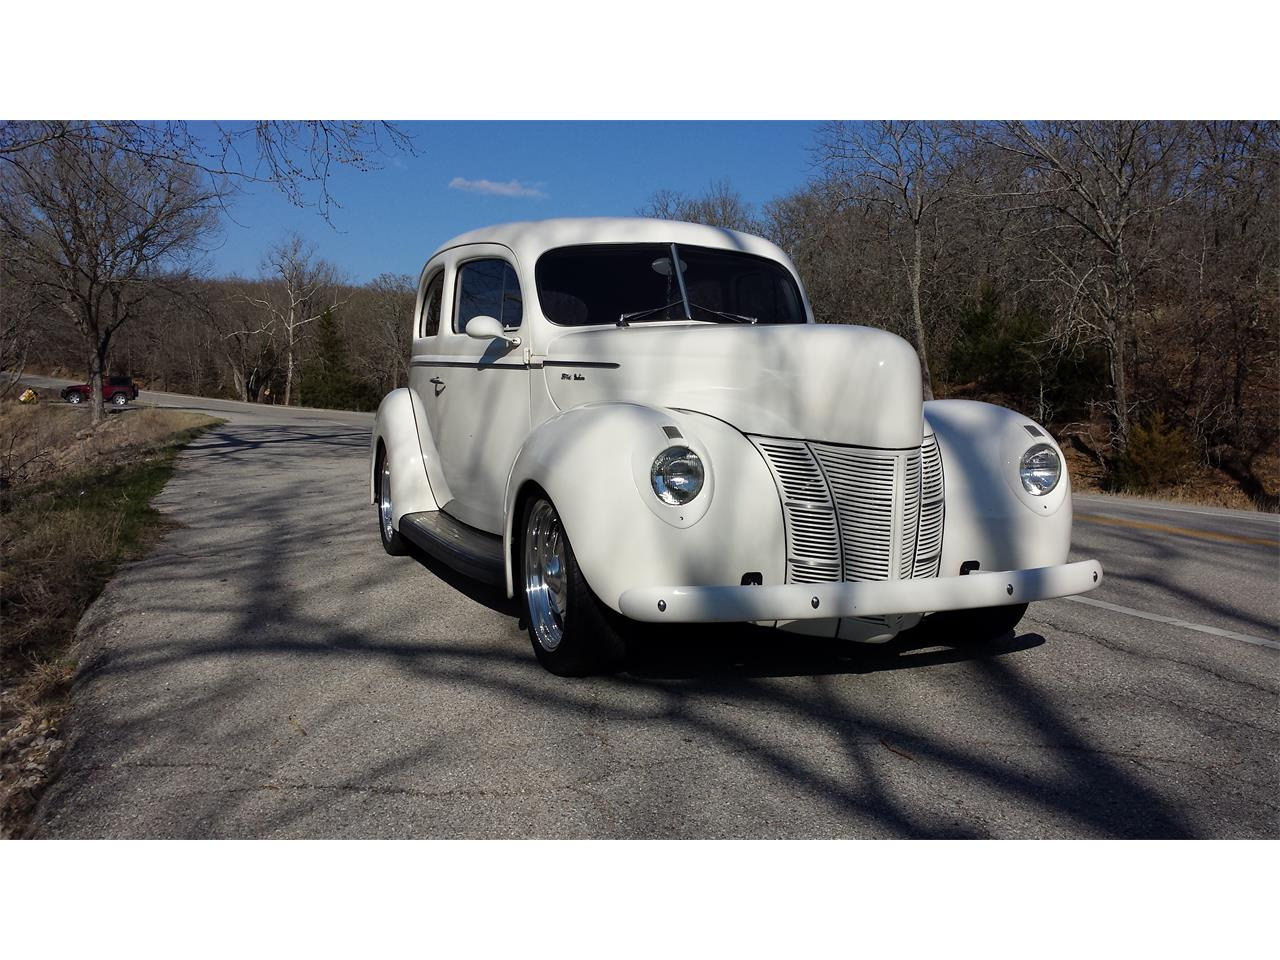 Large Picture of Classic '40 Ford Deluxe located in Oklahoma - $29,500.00 Offered by a Private Seller - HO65